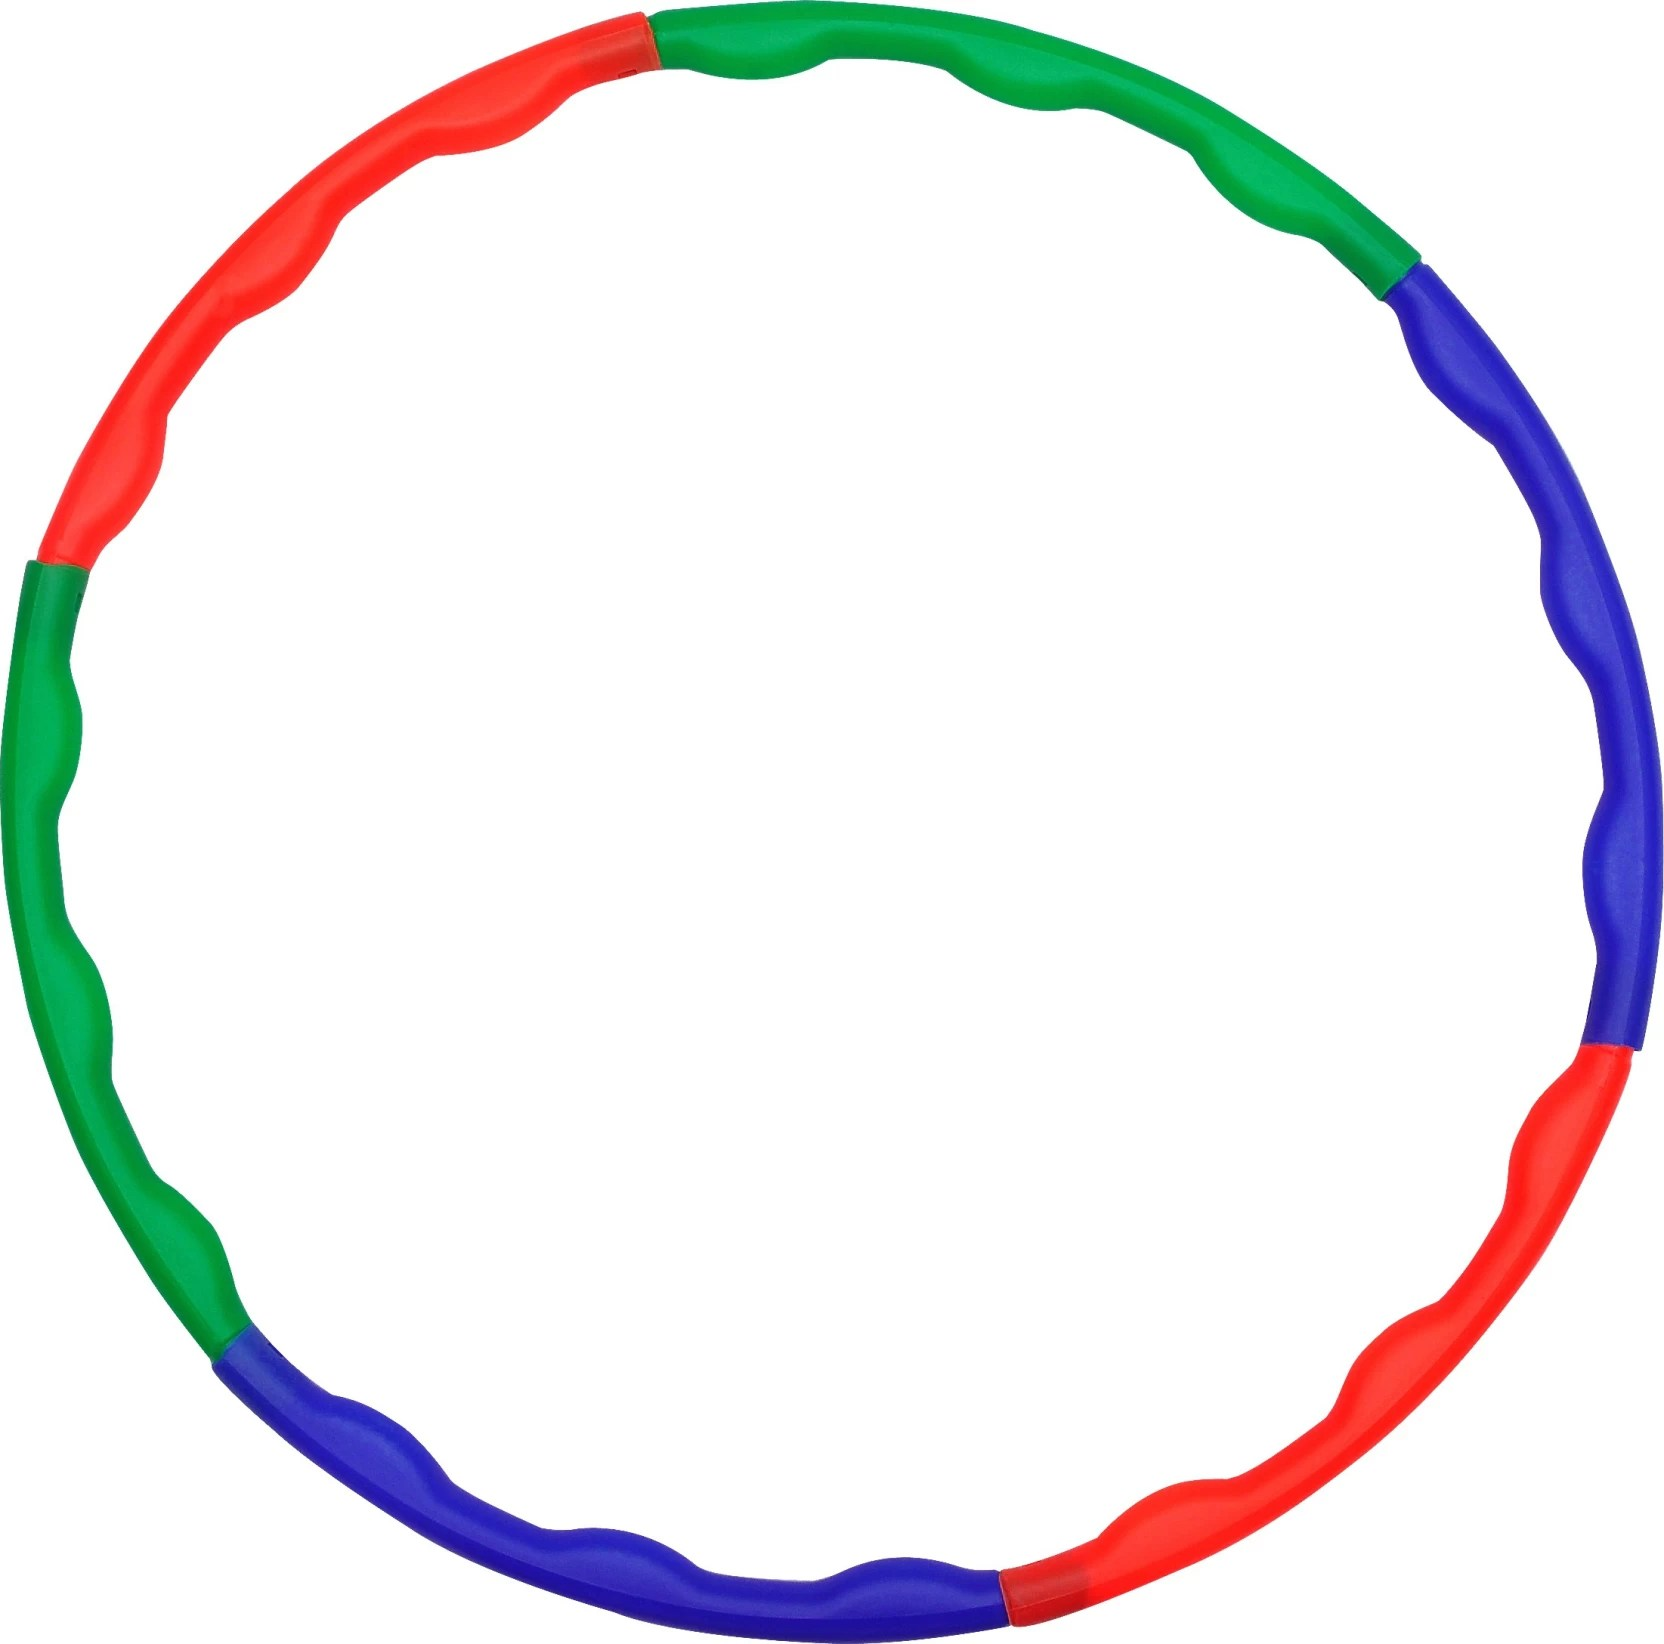 hight resolution of gsi collapsible into 6 rods hula hoop diameter 60 cm